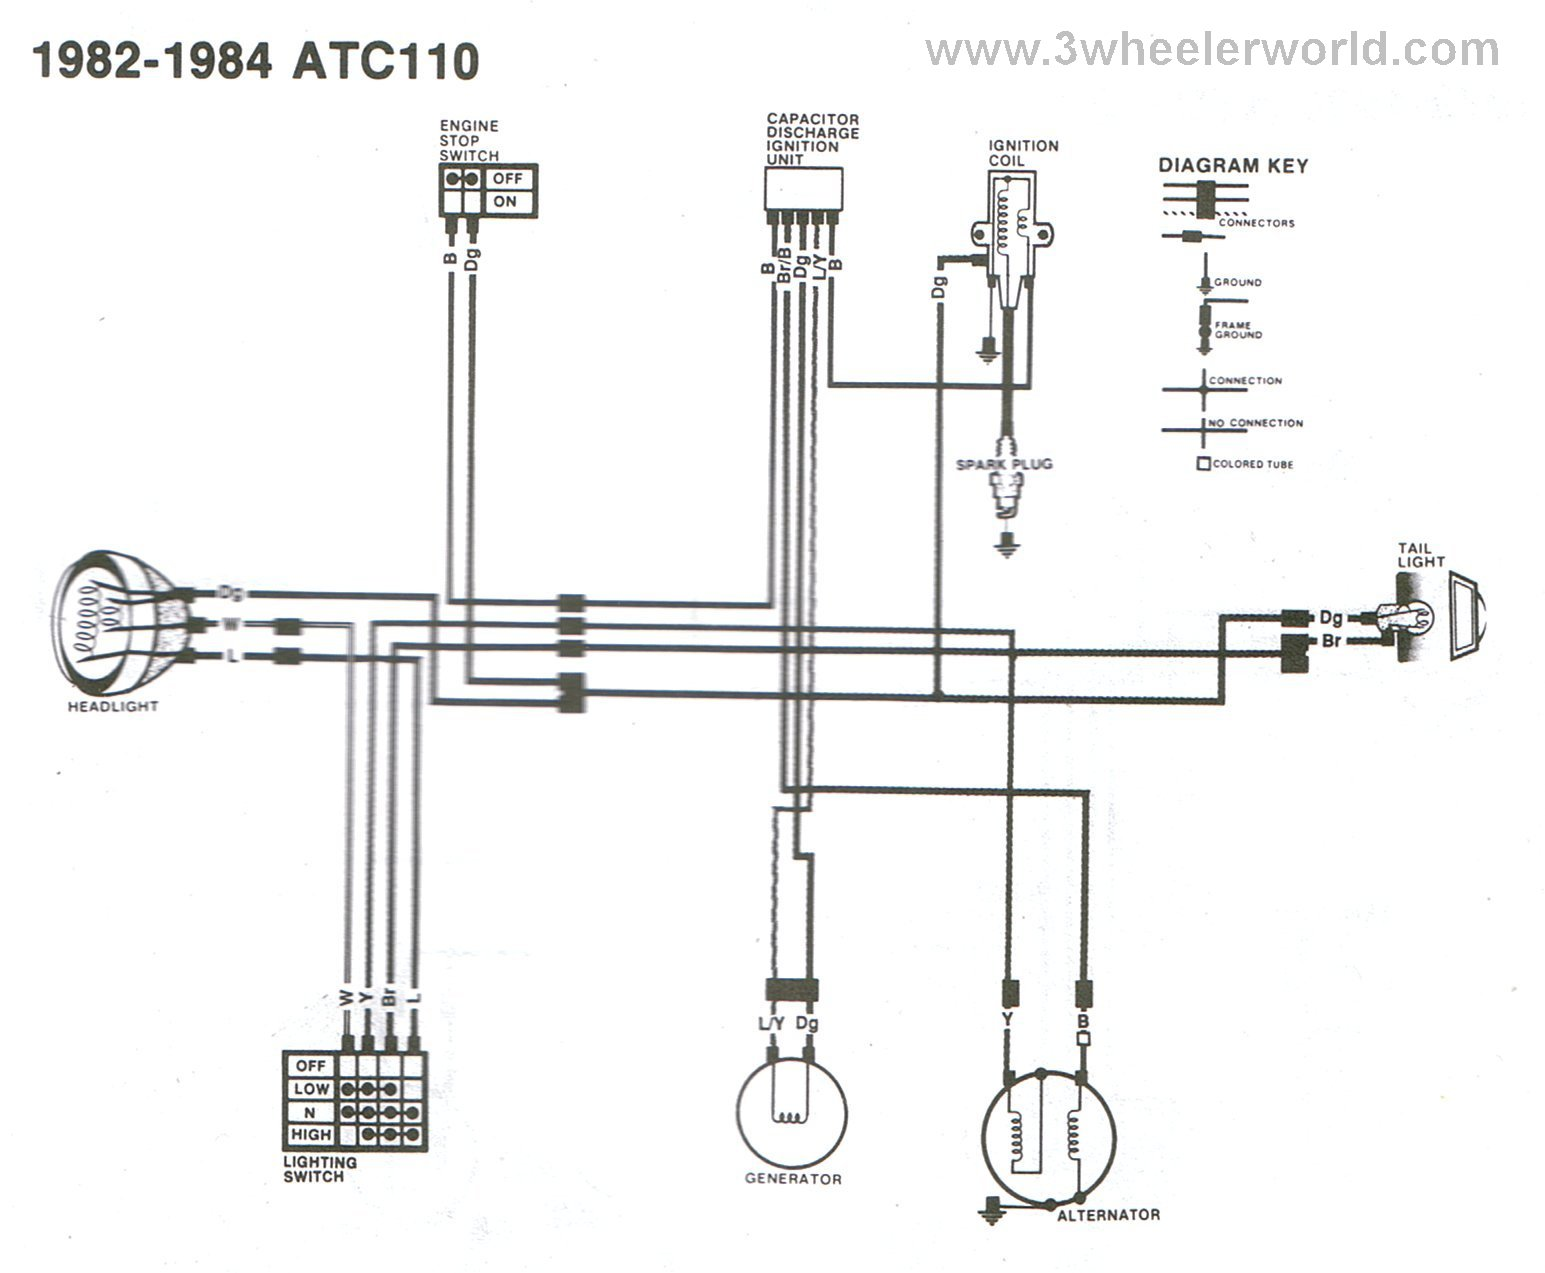 ATC110x82Thru84 3 wheeler world tech help honda wiring diagrams Honda Engine Wiring Diagram at alyssarenee.co